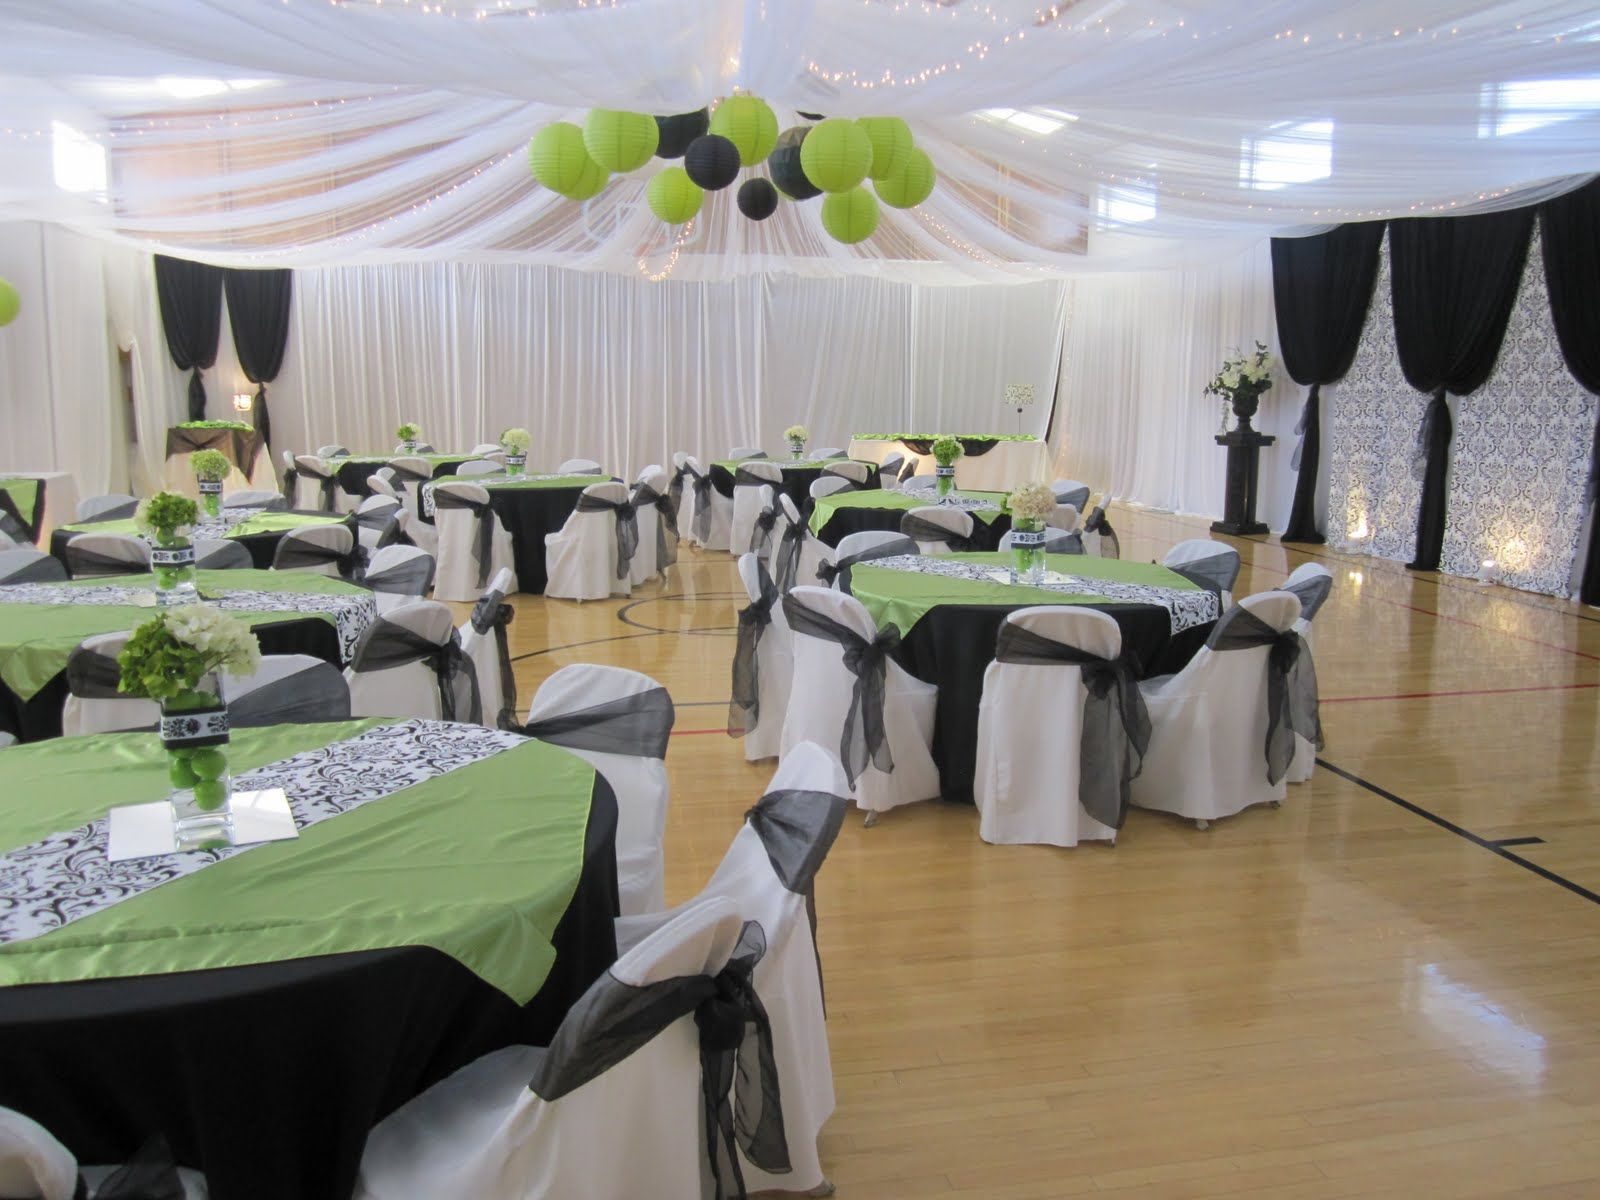 How To Turn A Church Gym Into A Romantic Wedding Venue Fabulous